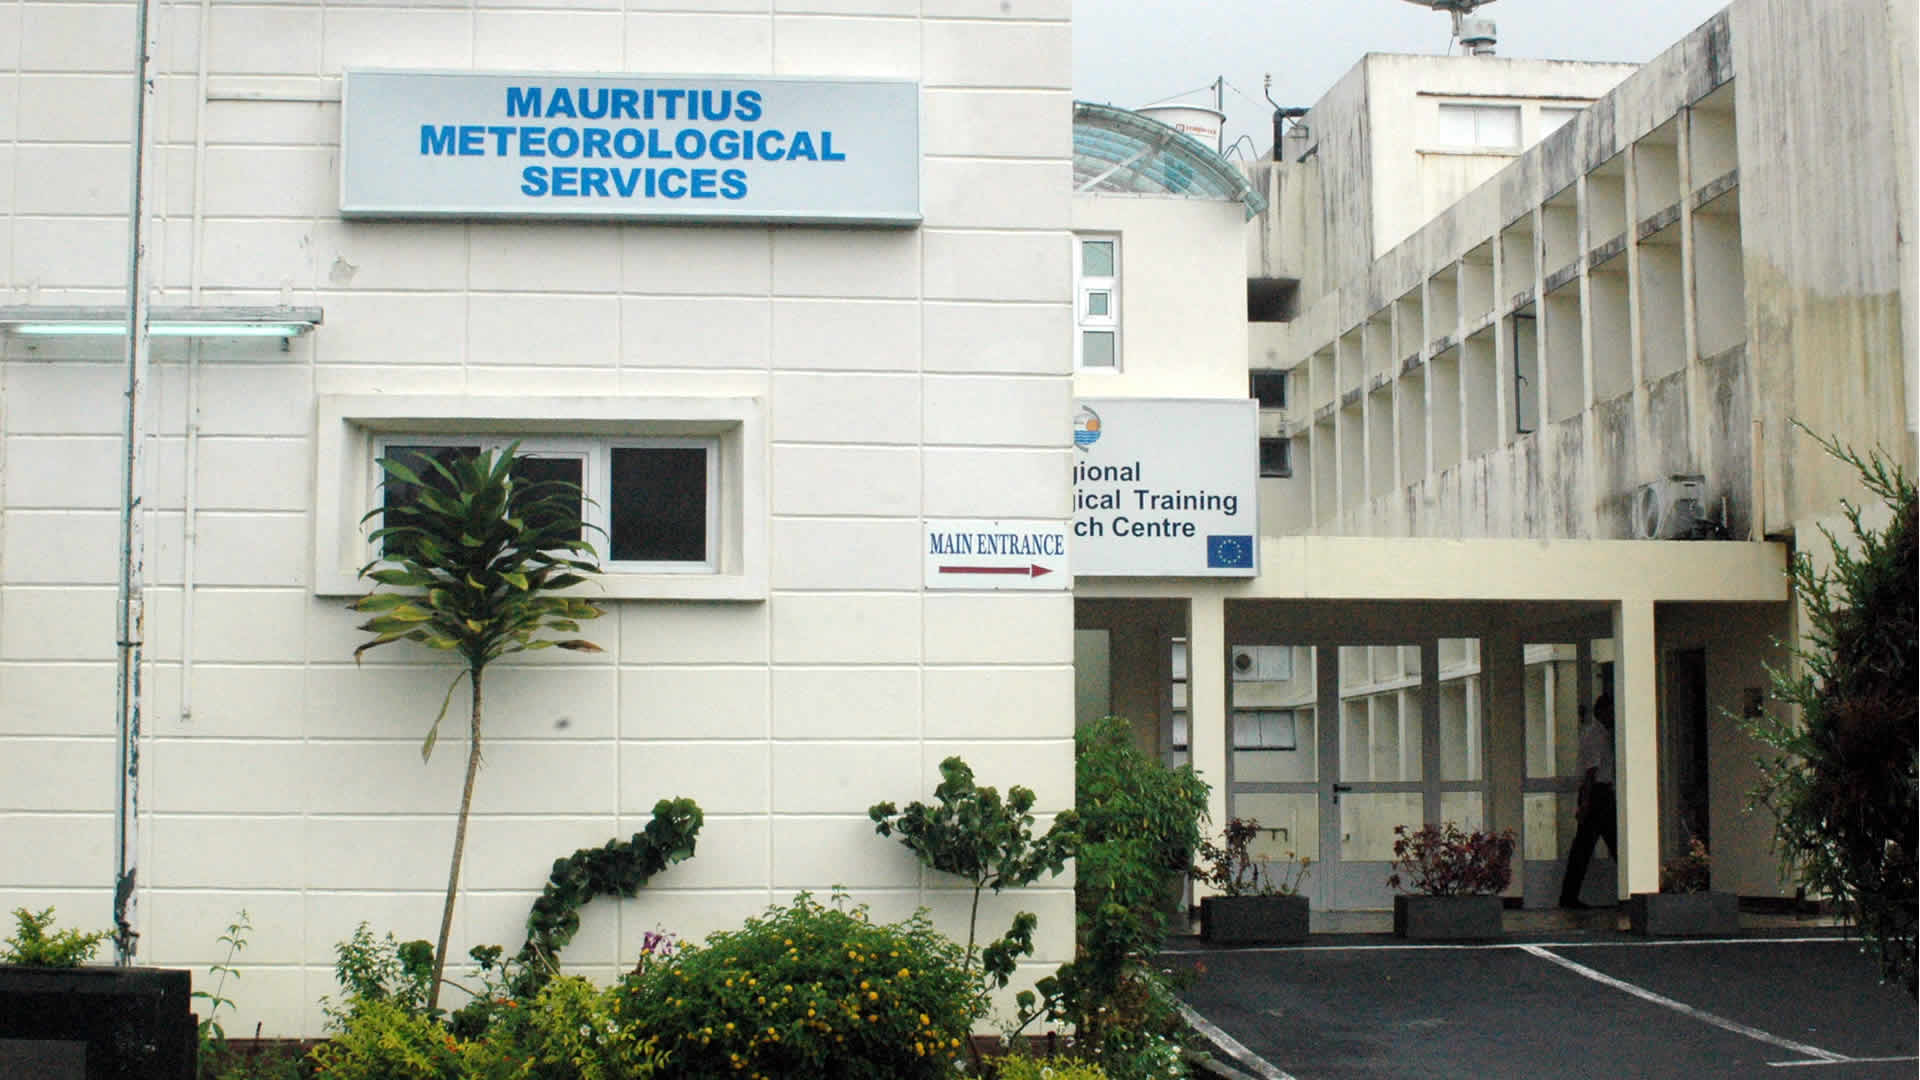 Mauritius meteorological services (MMS)